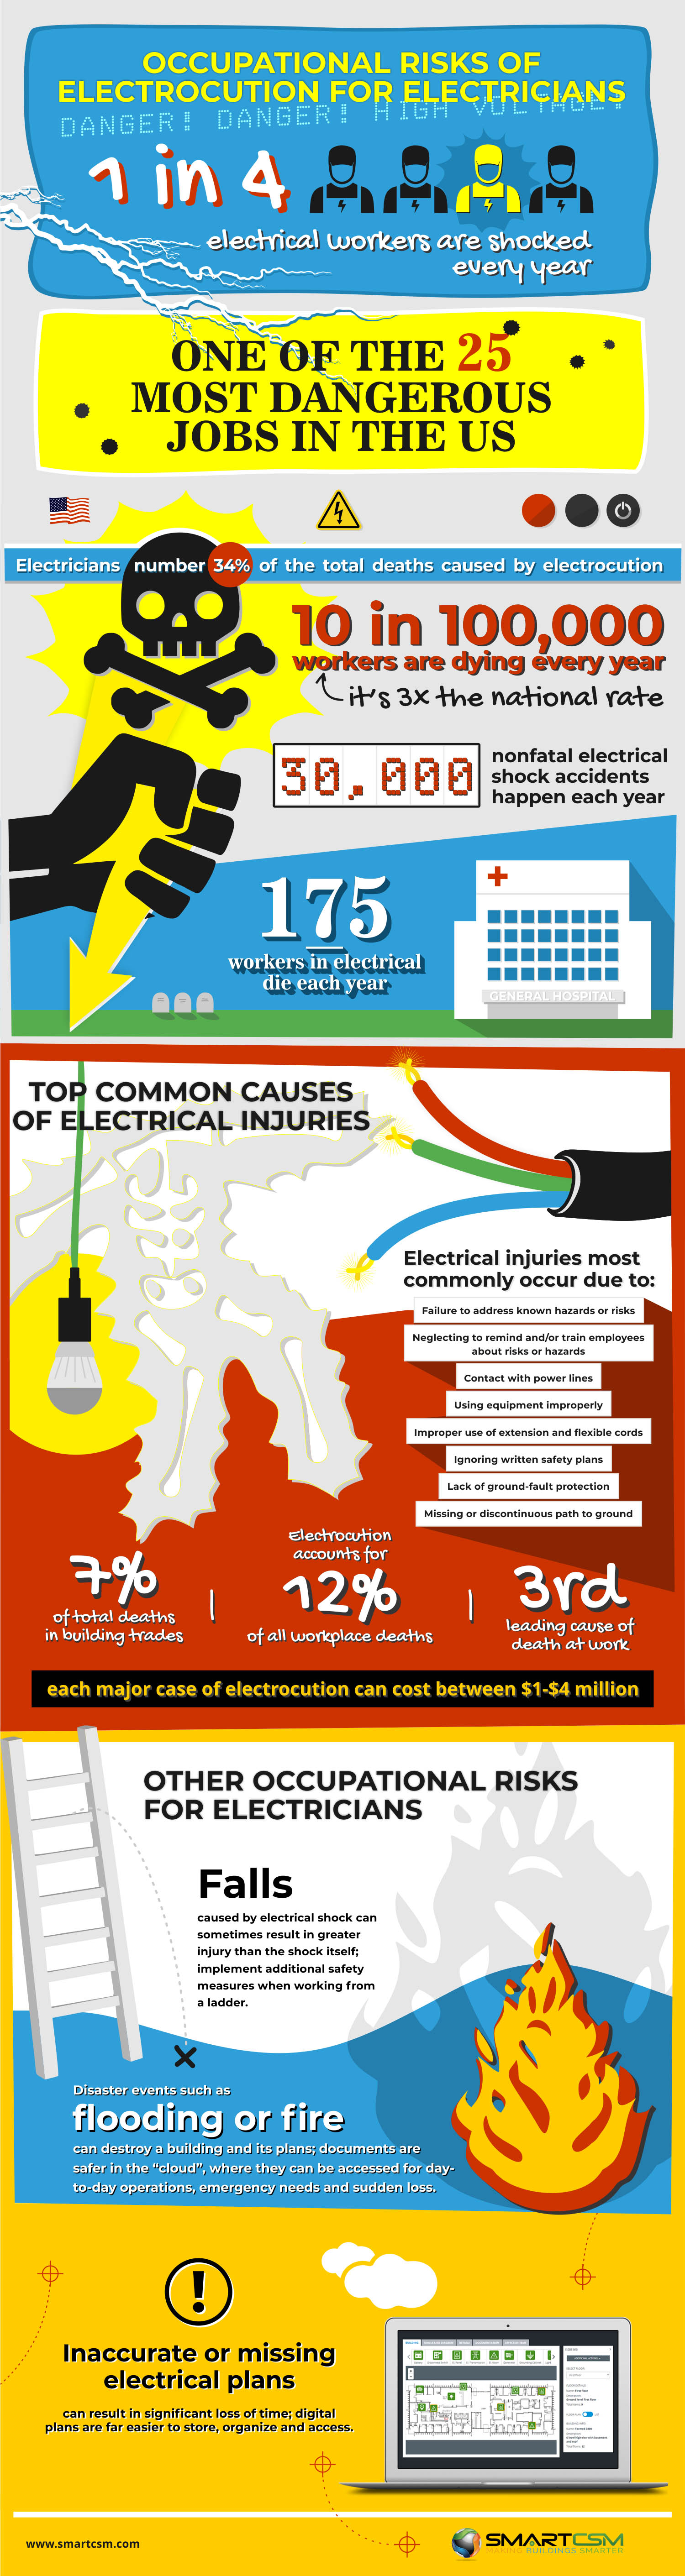 The Top Occupational Risk for Electricians